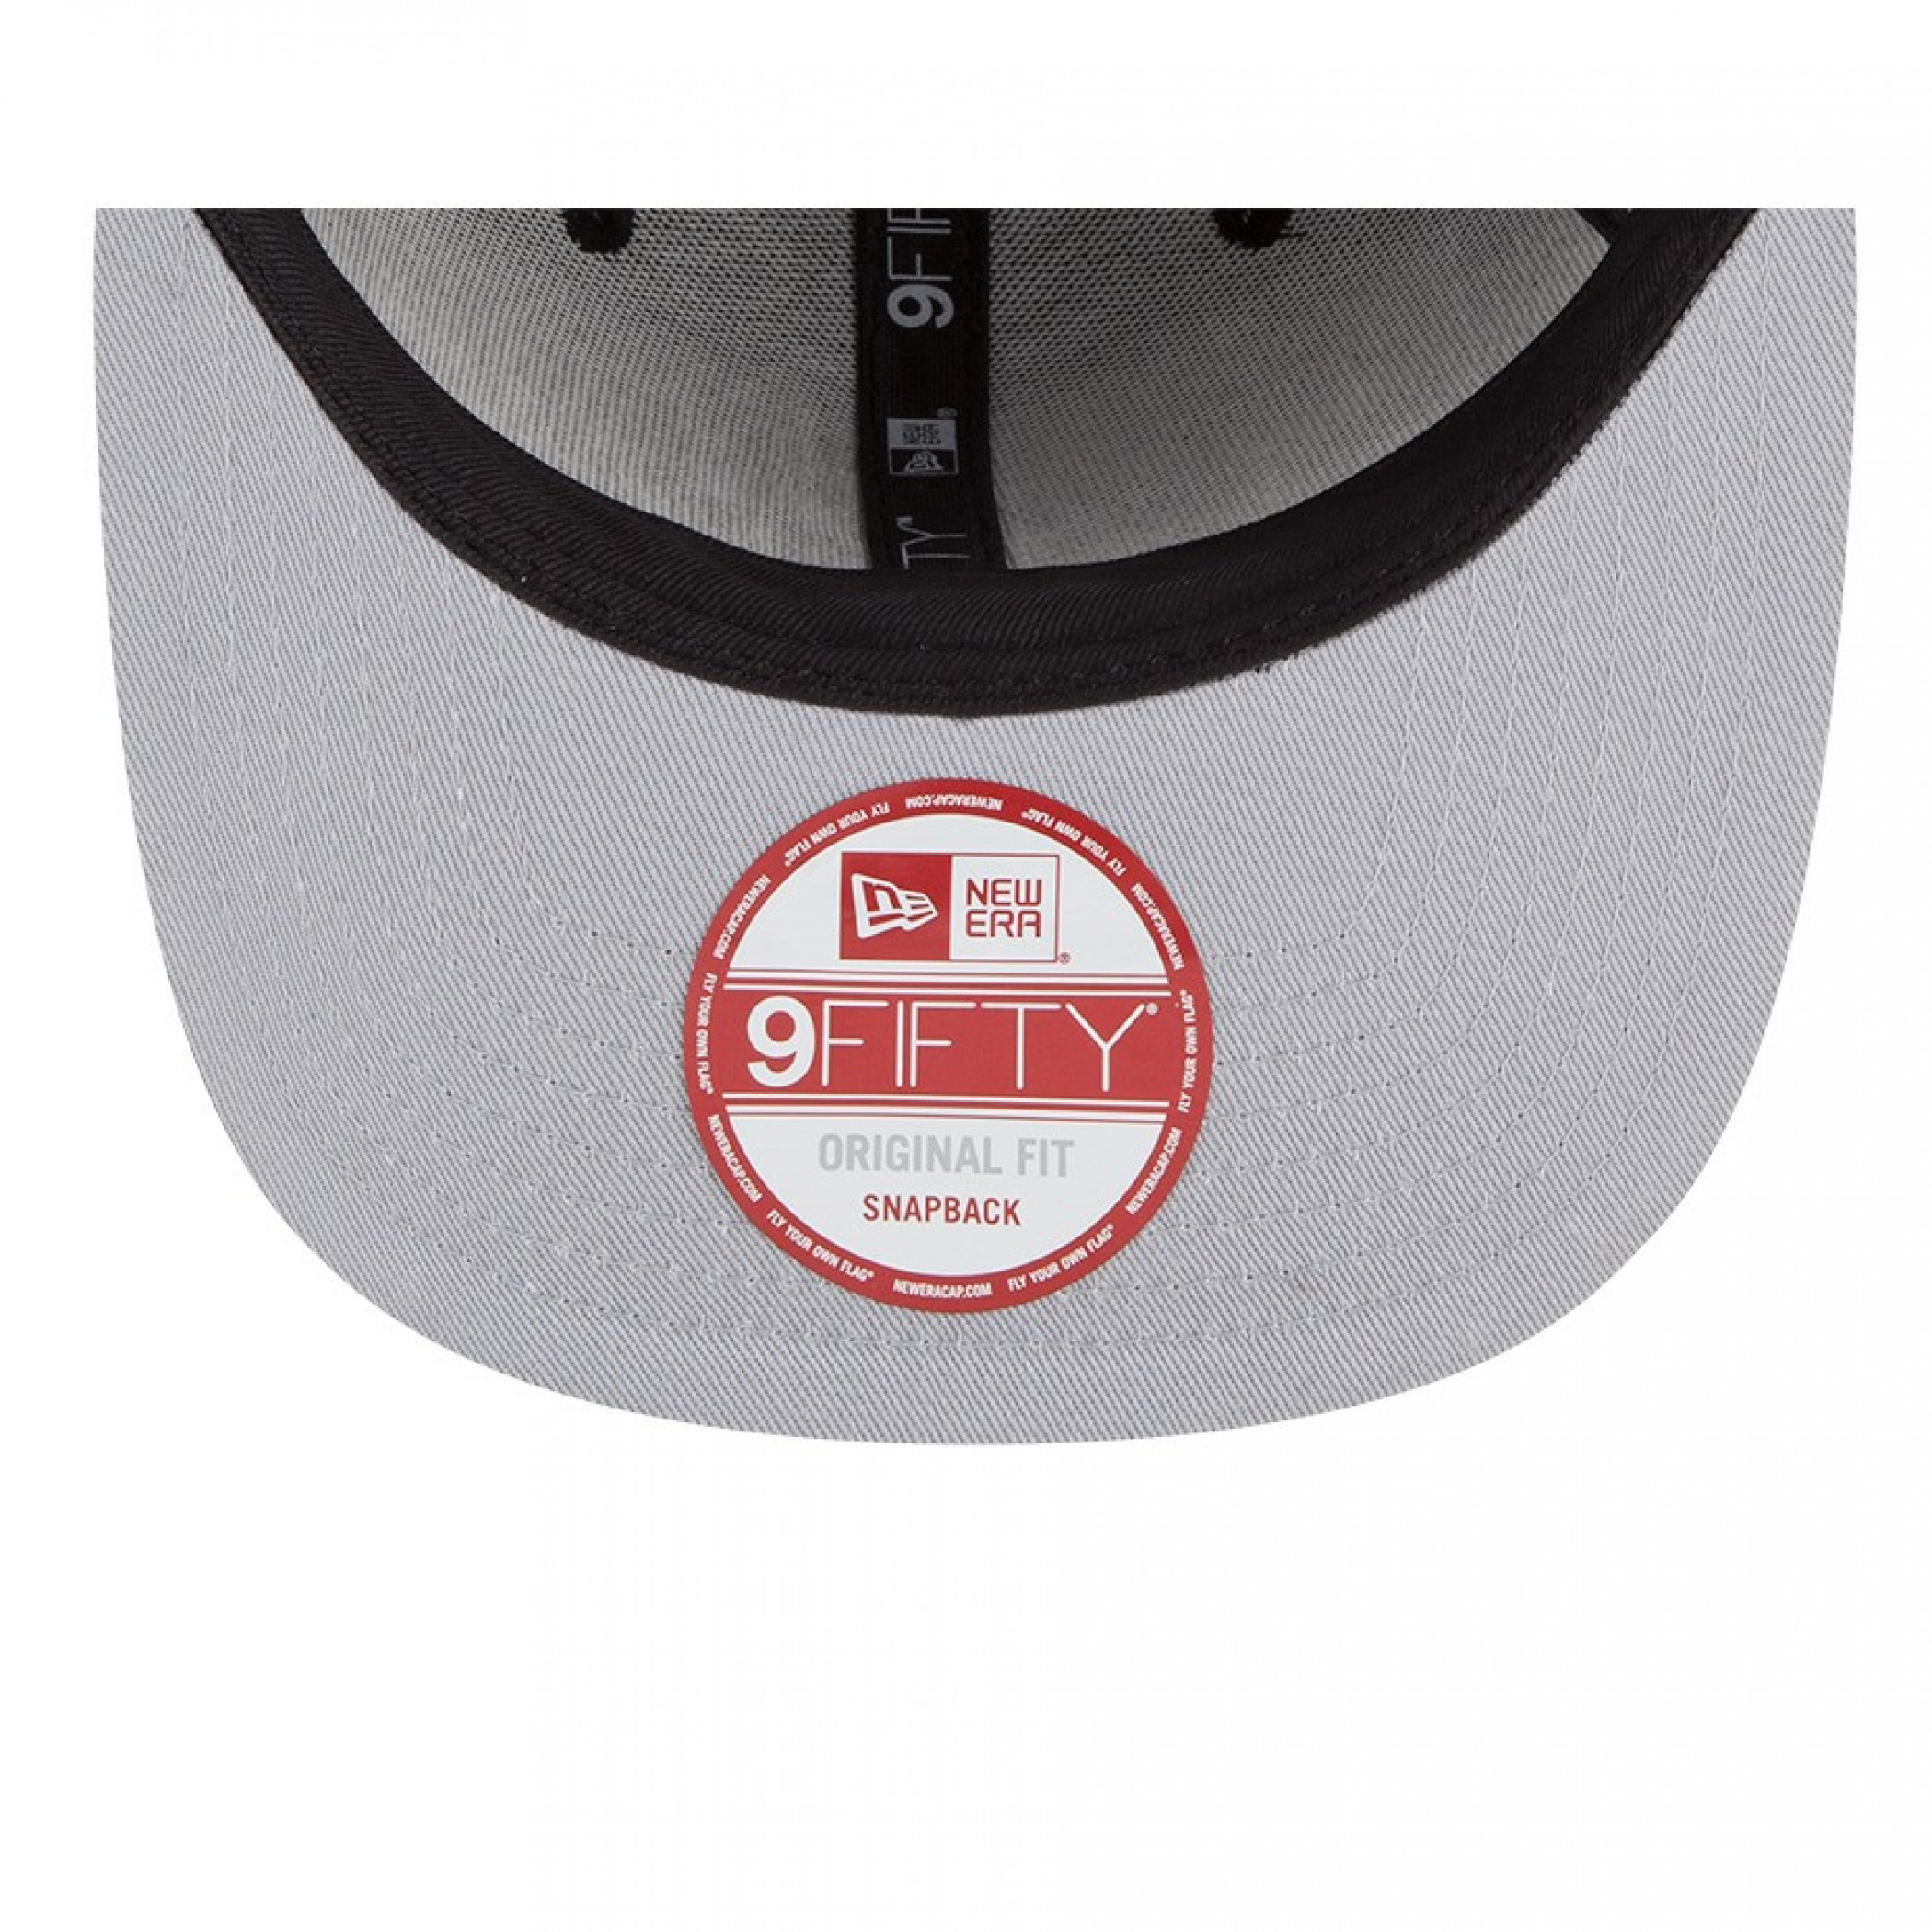 Star Wars Empire Strikes Back Sublimated Bill New Era 9Fifty Adjustable Hat